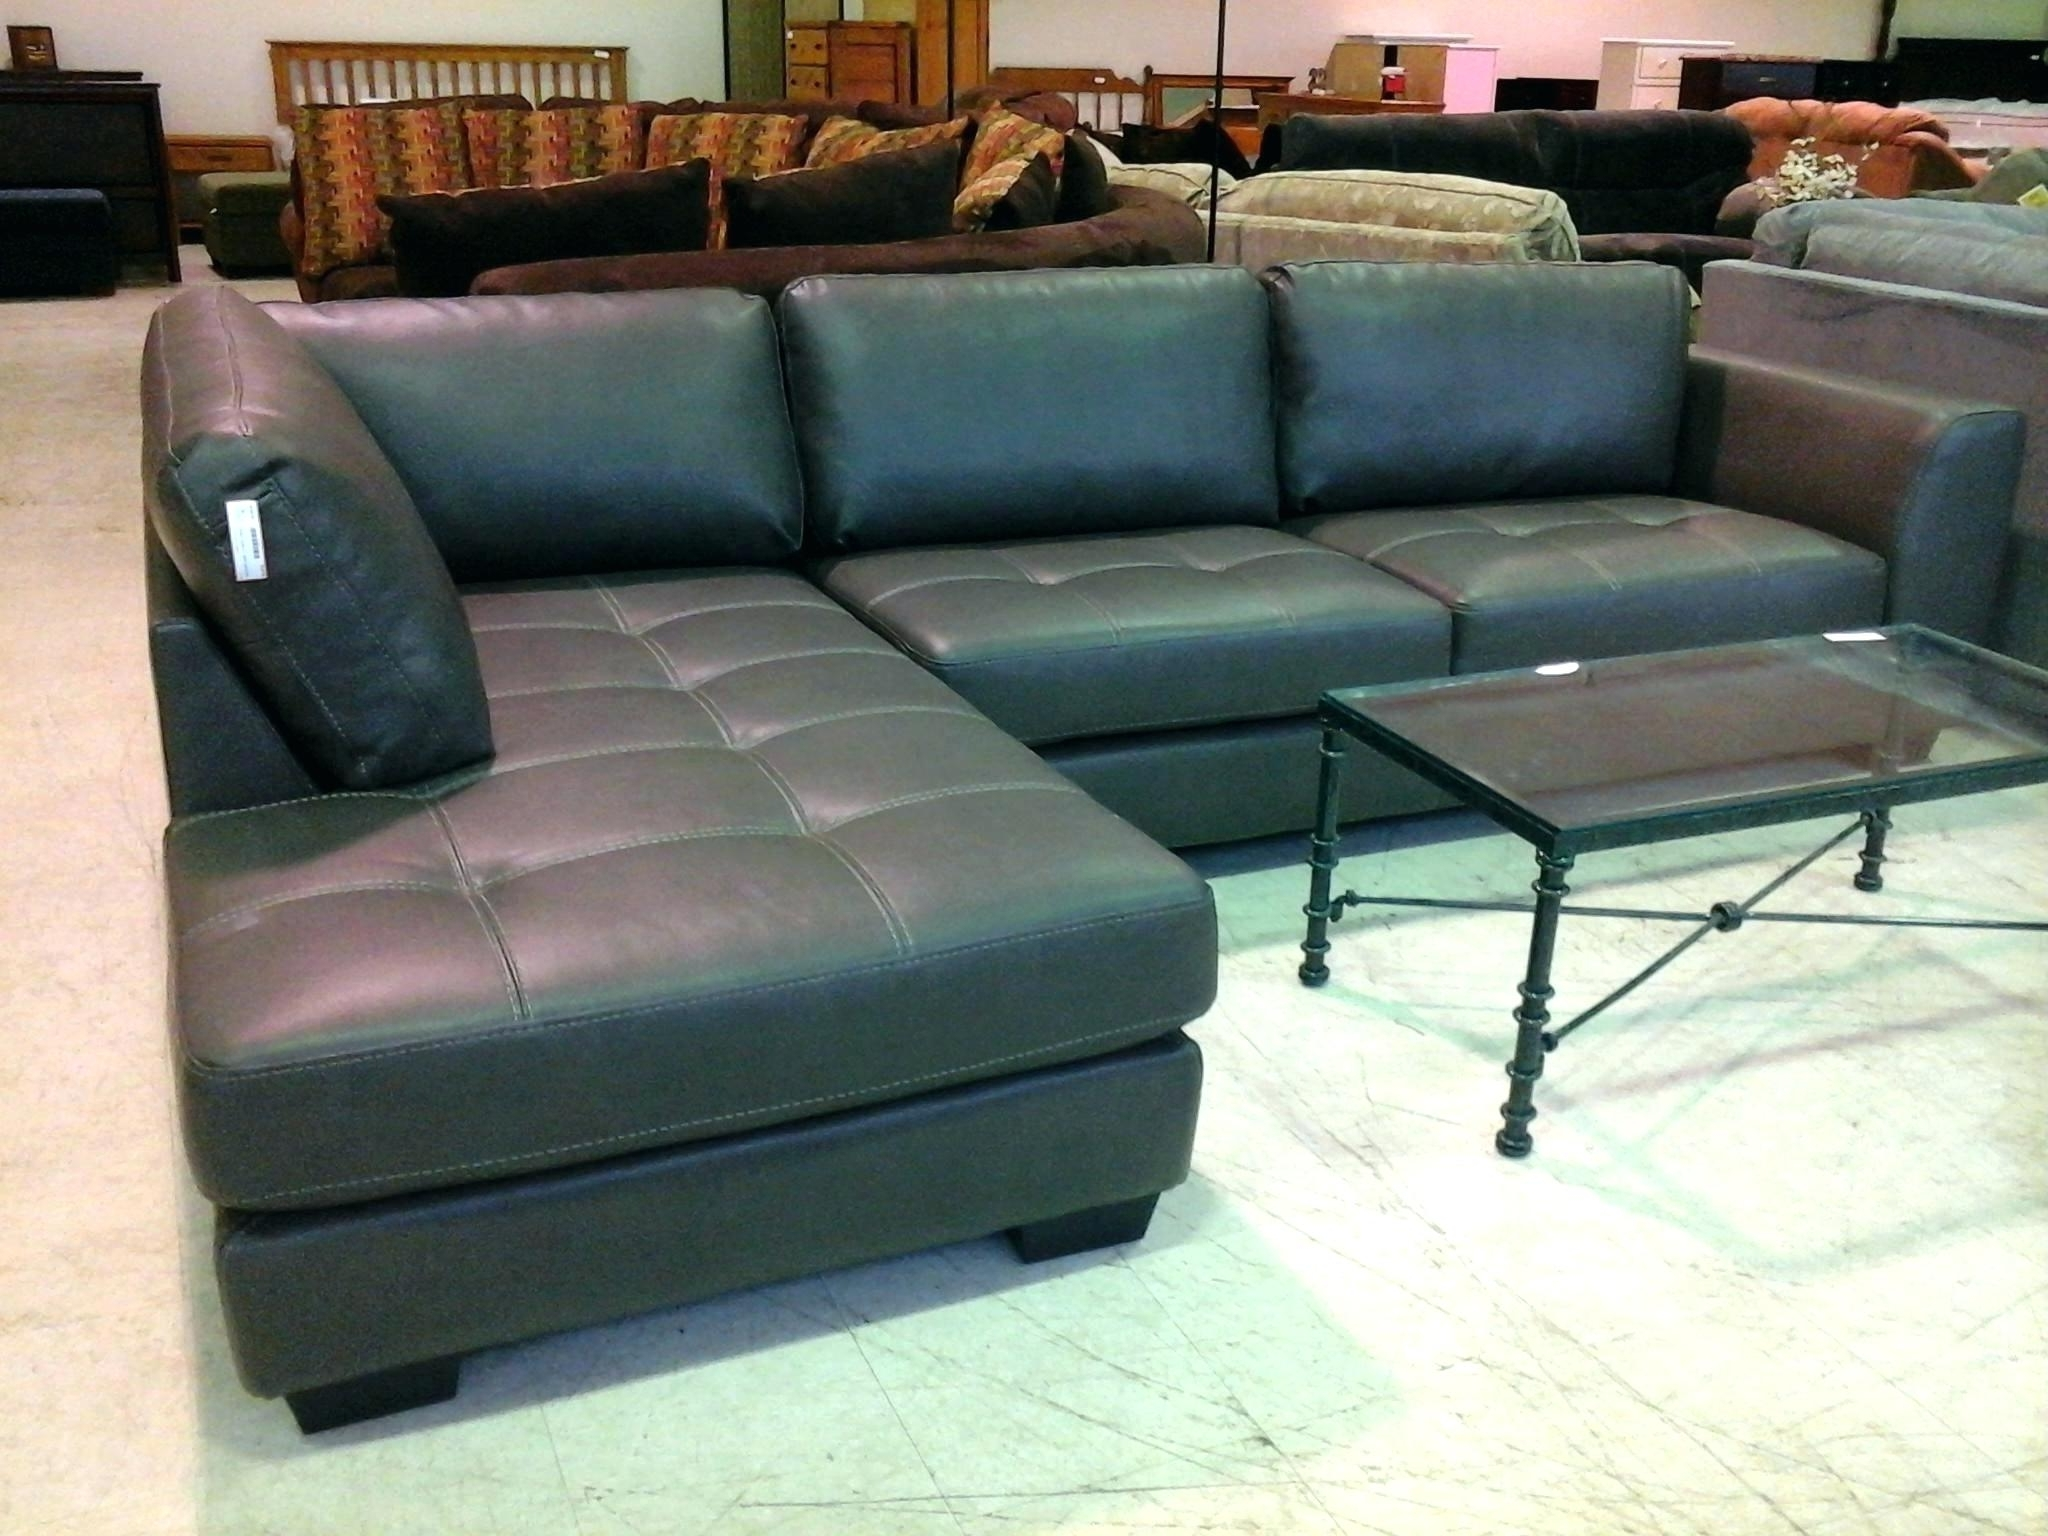 Most Recently Released Sears Sectional Sofa Natuzzi Clearwater Grey – Jasonatavastrealty Throughout Craftsman Sectional Sofas (View 14 of 15)